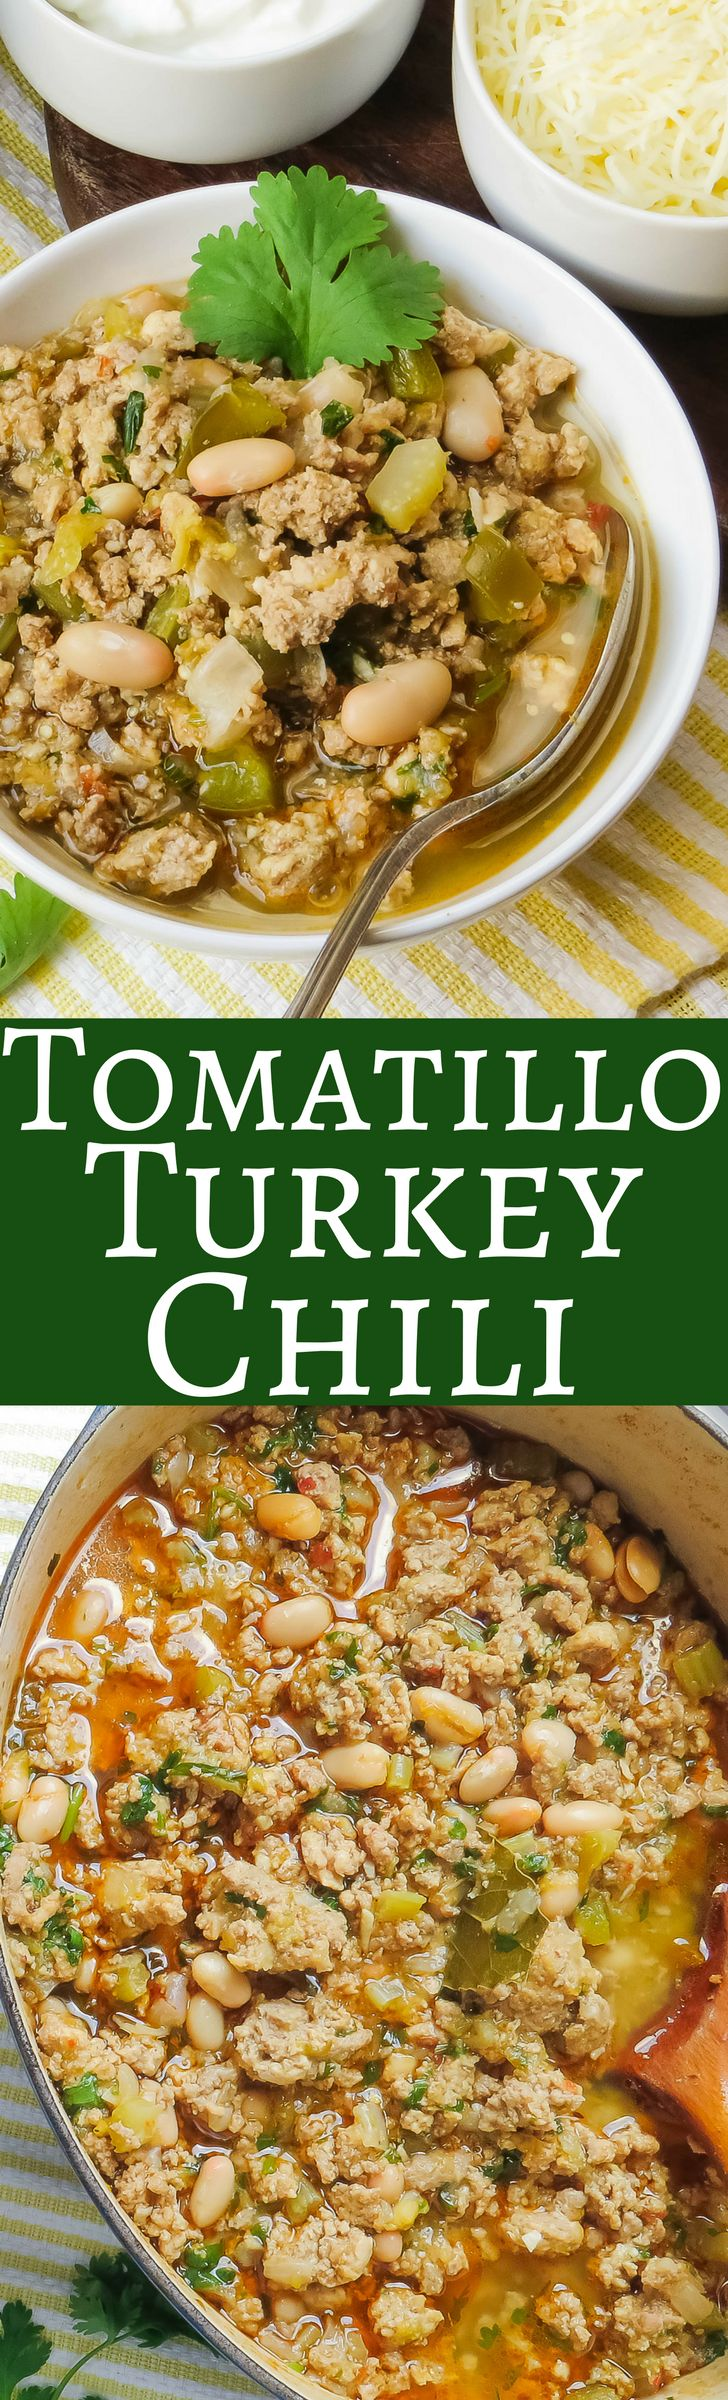 If you want a white bean chili recipe, this Tomatillo Turkey Chili is has green chiles, canned beans and ground turkey.  It's super easy to make and perfect game for game day snacking!